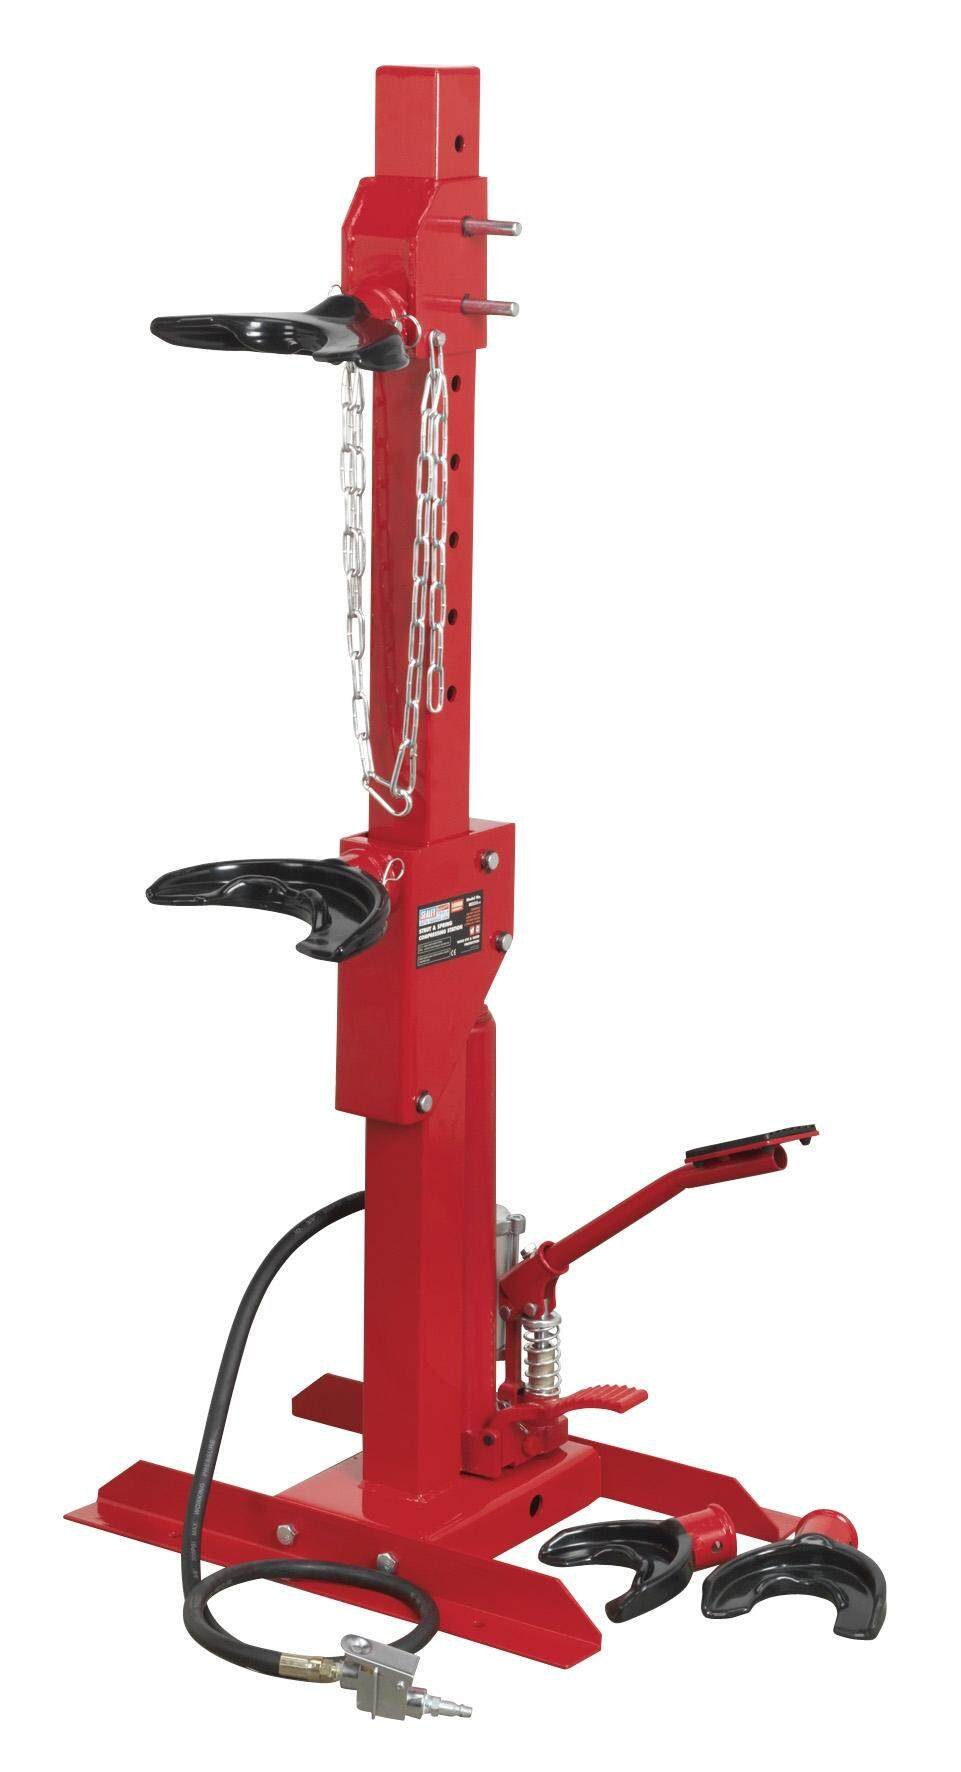 Sealey Coil Spring Compressing Station - Air/Hydraulic 1500kg Capacity